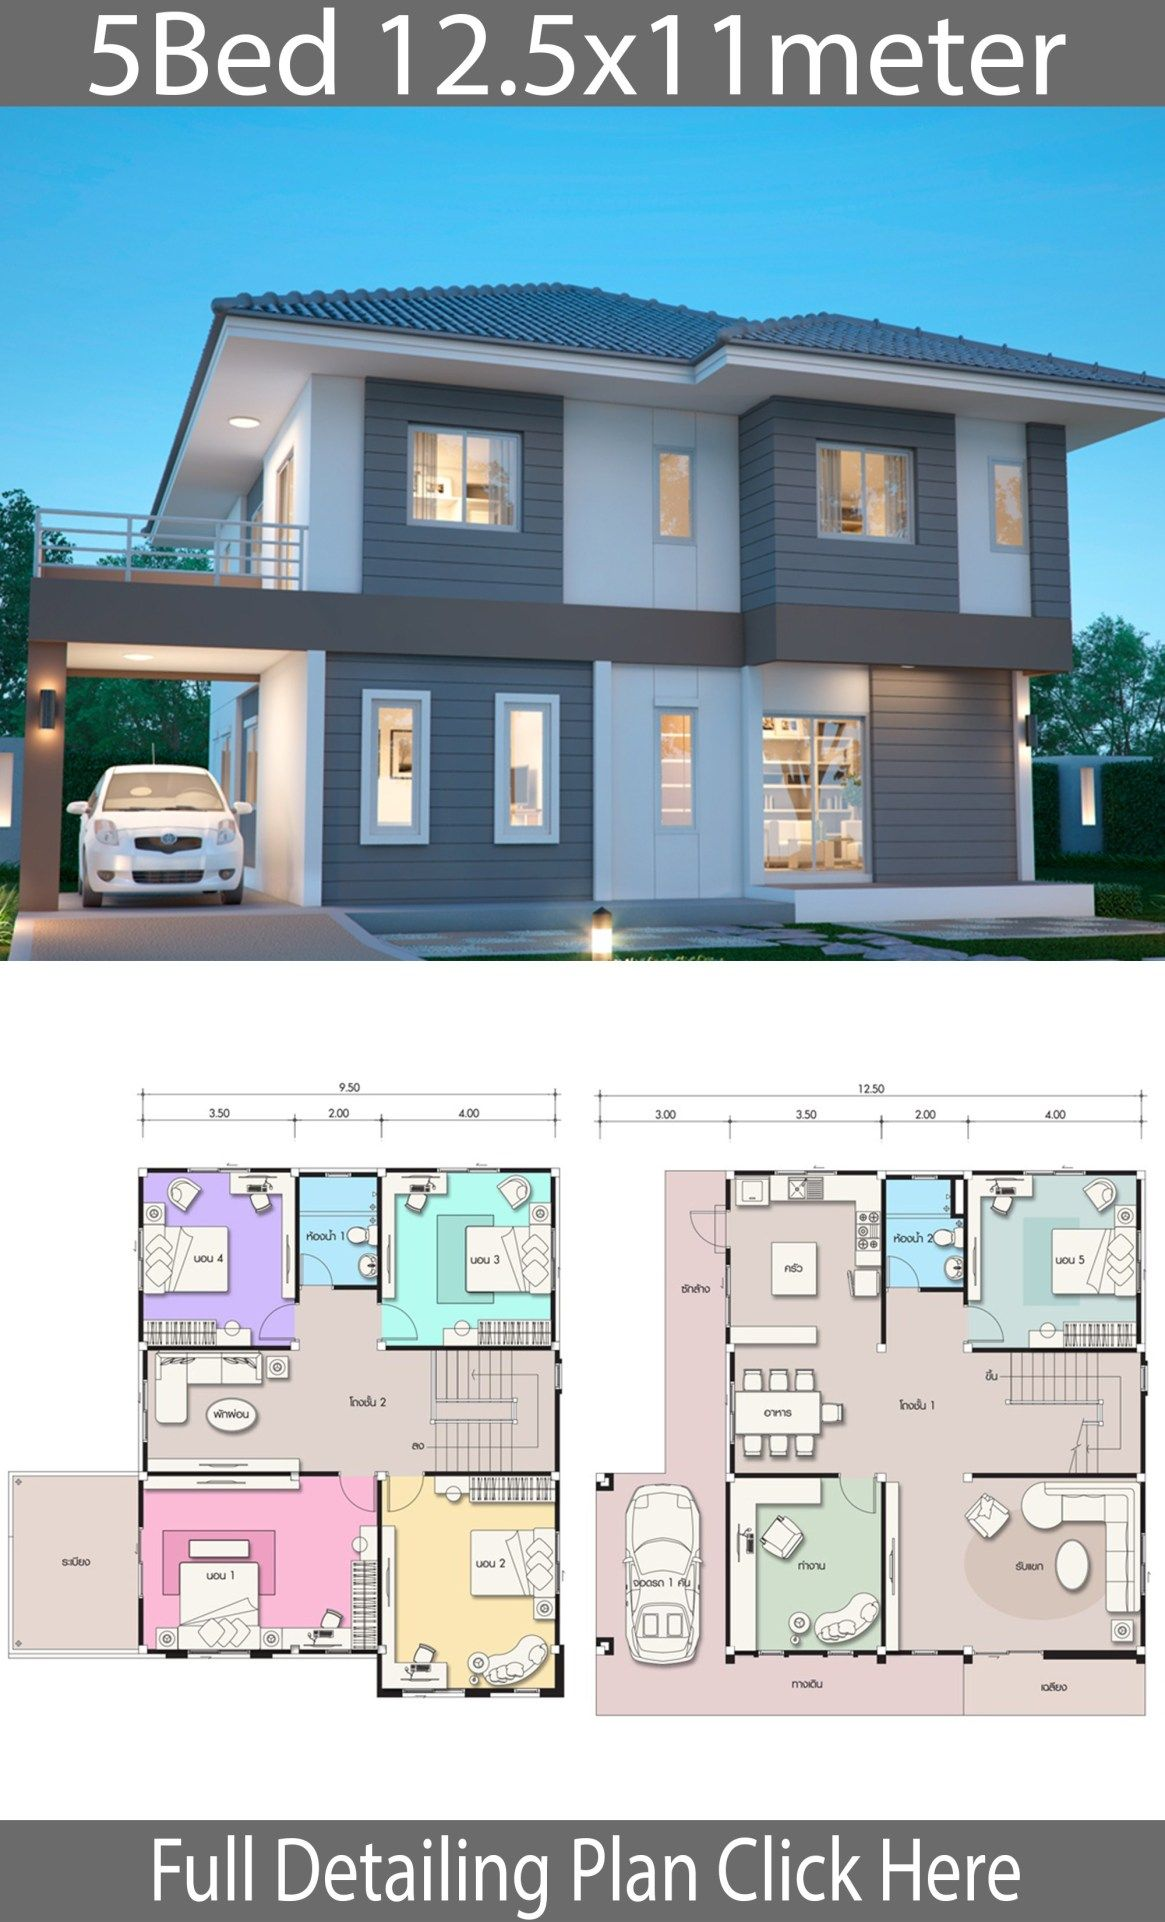 House Design Plan 12 5x11m With 5 Bedrooms In 2020 Architectural House Plans Home Design Plans